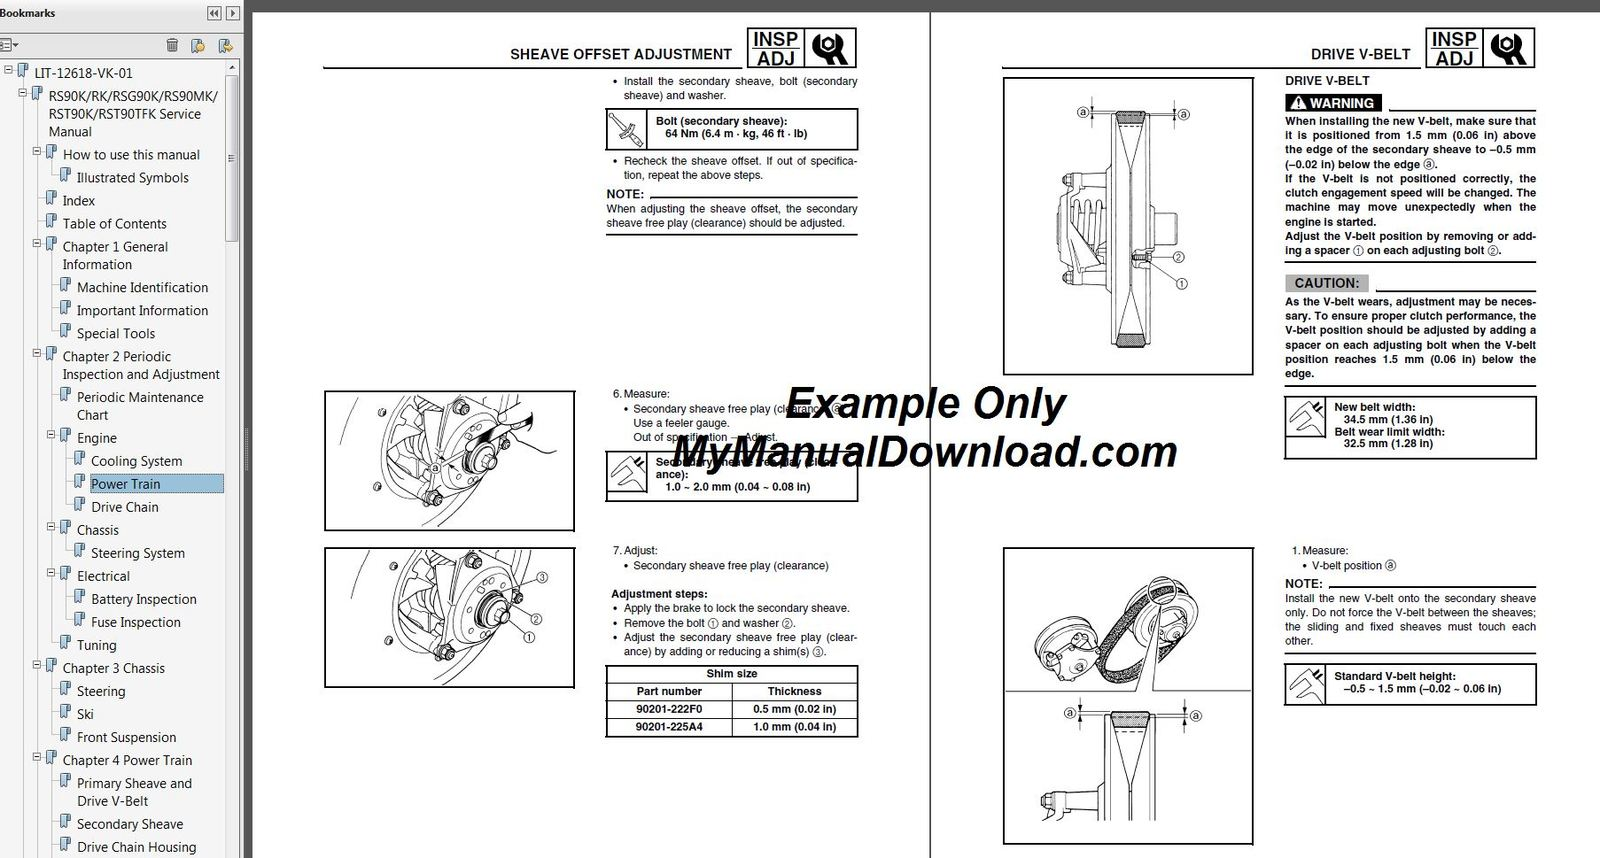 2010-2011 Yamaha FX Nytro Snowmobile Service Manual (All